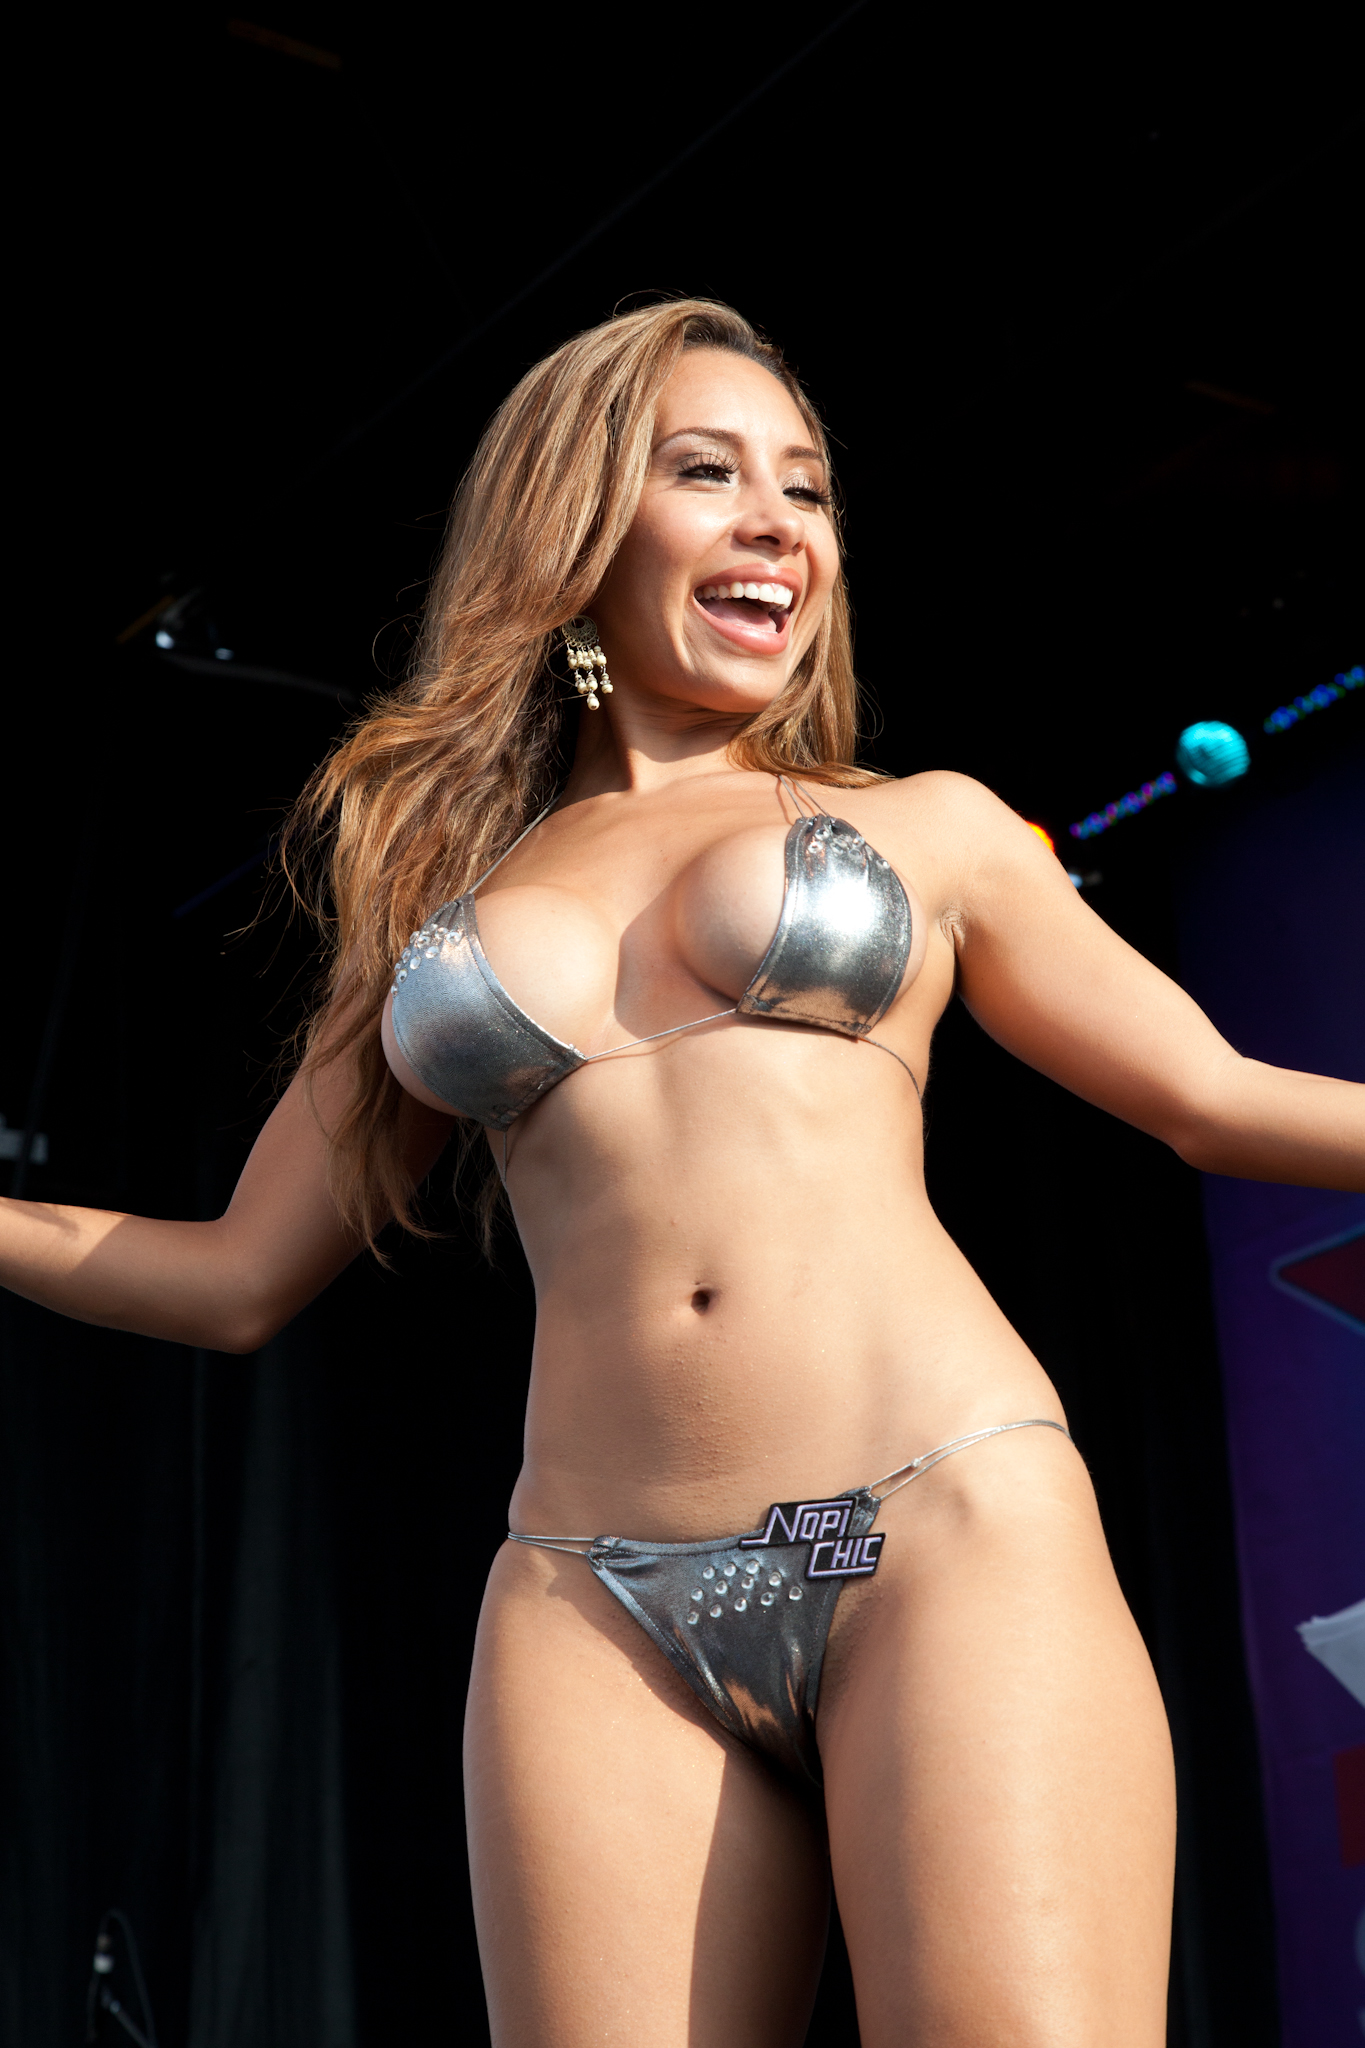 File:Hot Import Nights bikini contest 26.jpg